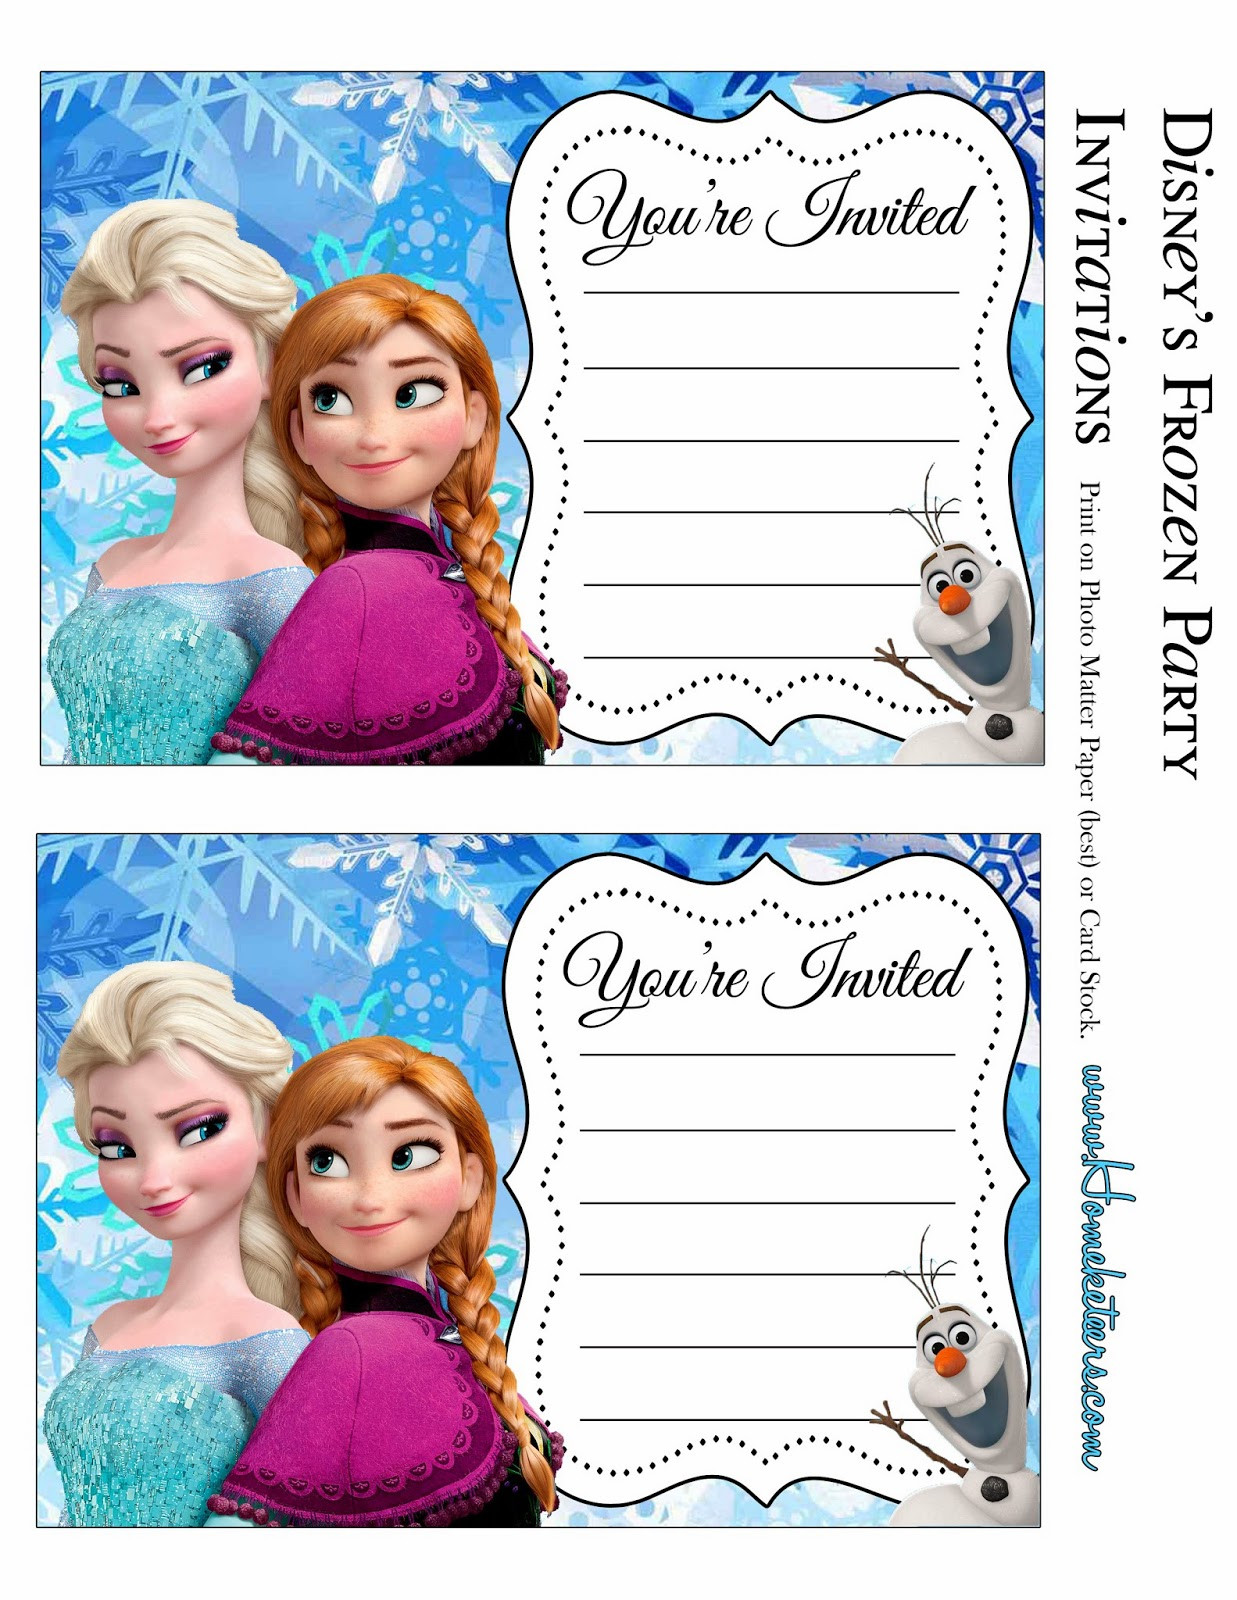 Frozen Printable Invitation Frozen Party Free Printable Invitations Oh My Fiesta In